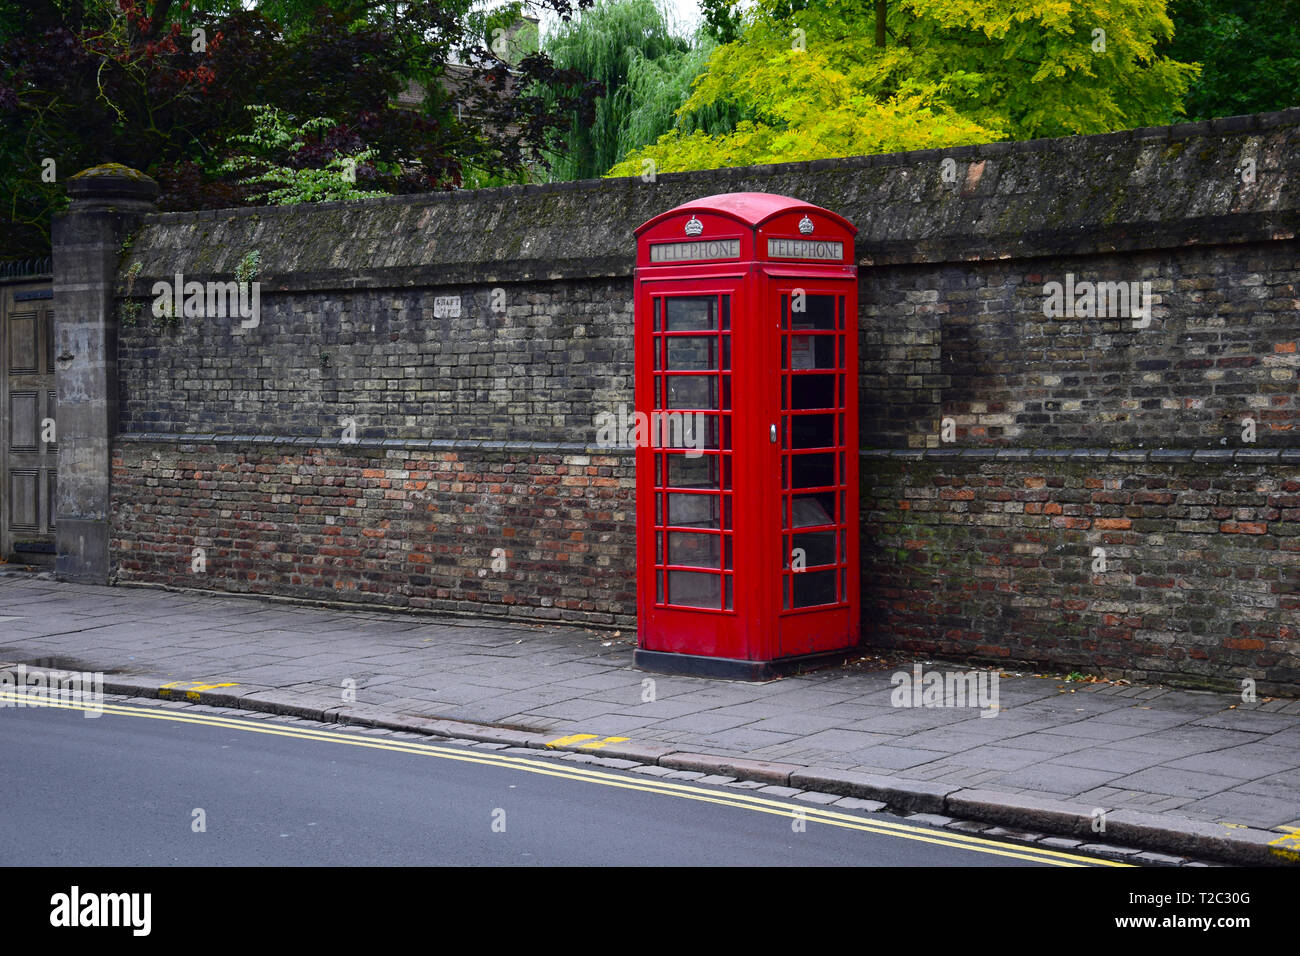 Telefonzelle in Cambridge, England, UK - Stock Image